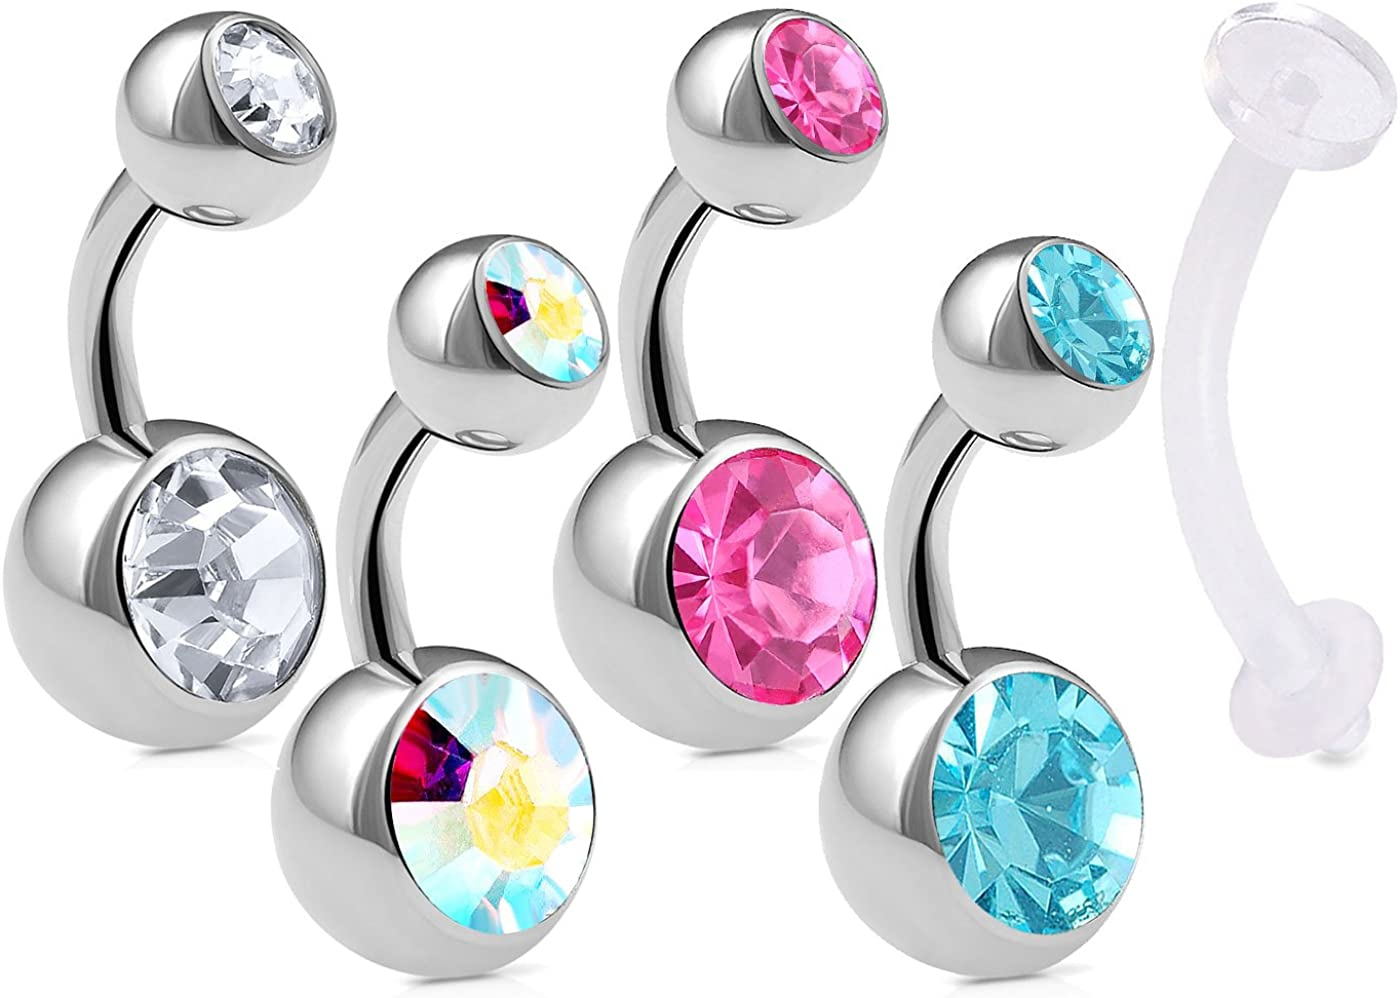 5Pcs Belly Button Surgical Steel 14g 1/4 6mm Short Navel Ring Ear Ball Bar Crystal And Retainer Lot Piercing - CL AB RO AQ